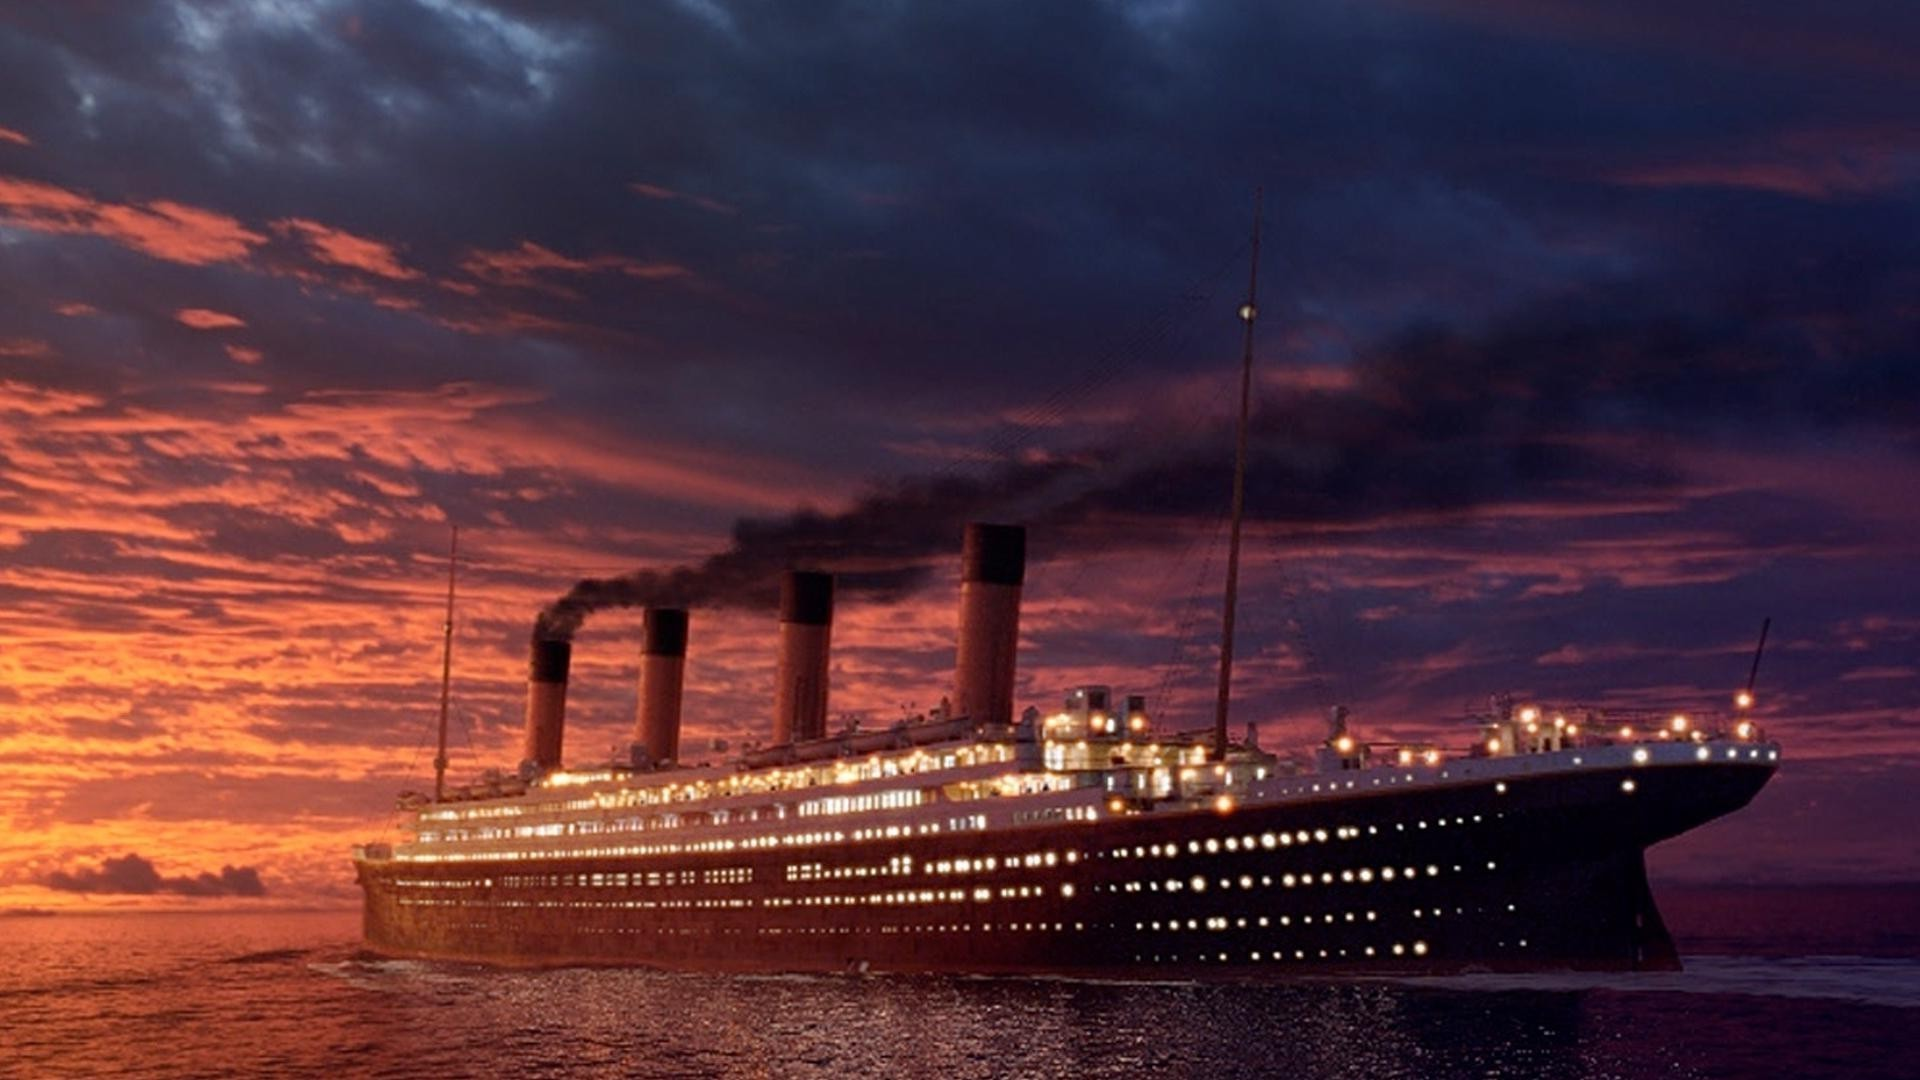 large ships and liners water sunset travel sky bridge architecture transportation system city dusk sea evening dawn outdoors vehicle harbor